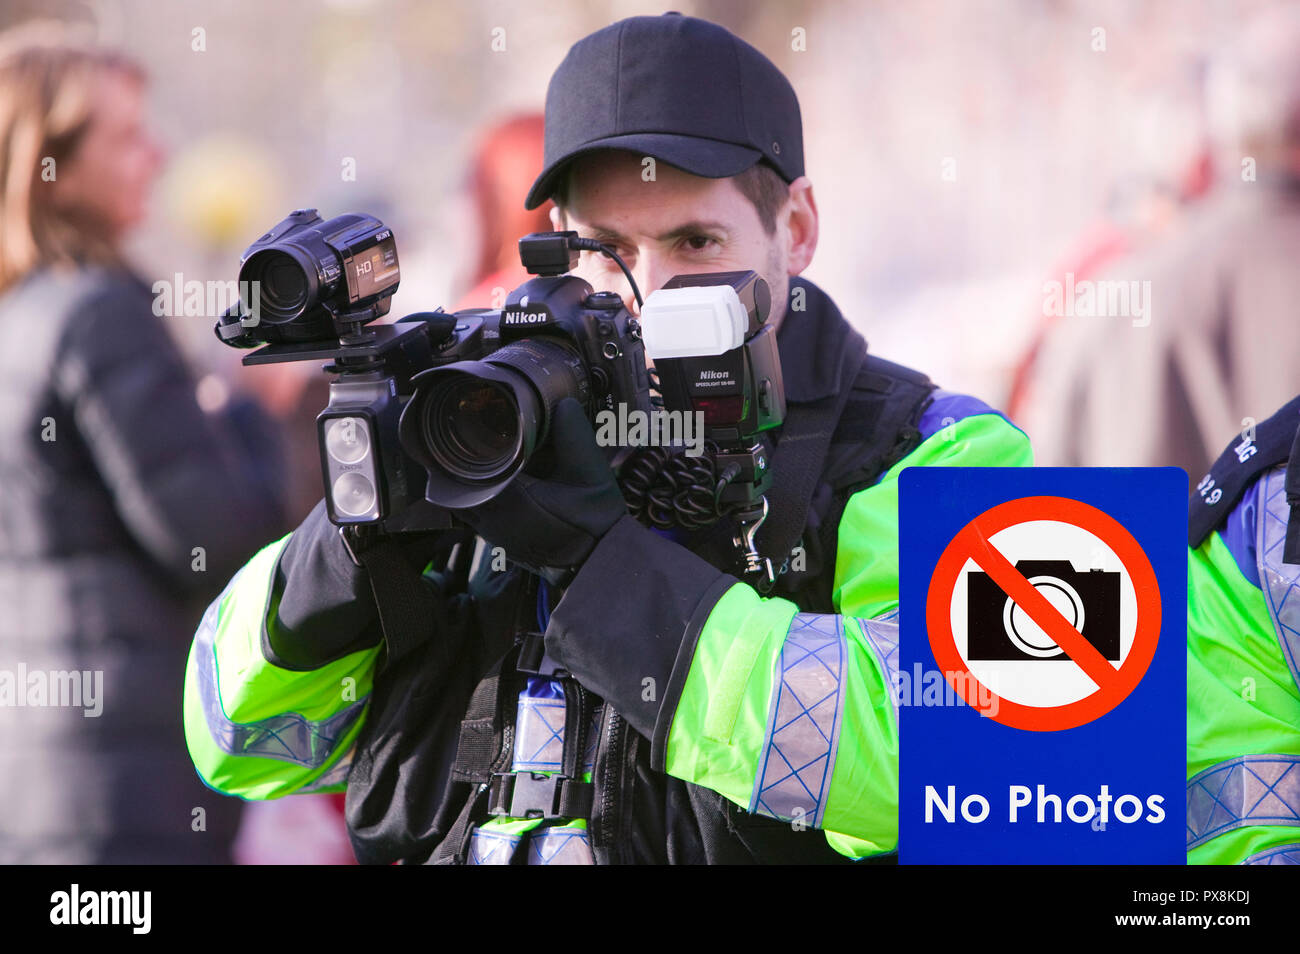 Police photographer photographing protestors at a climate change rally in London December 2008 with a no photos sign. - Stock Image